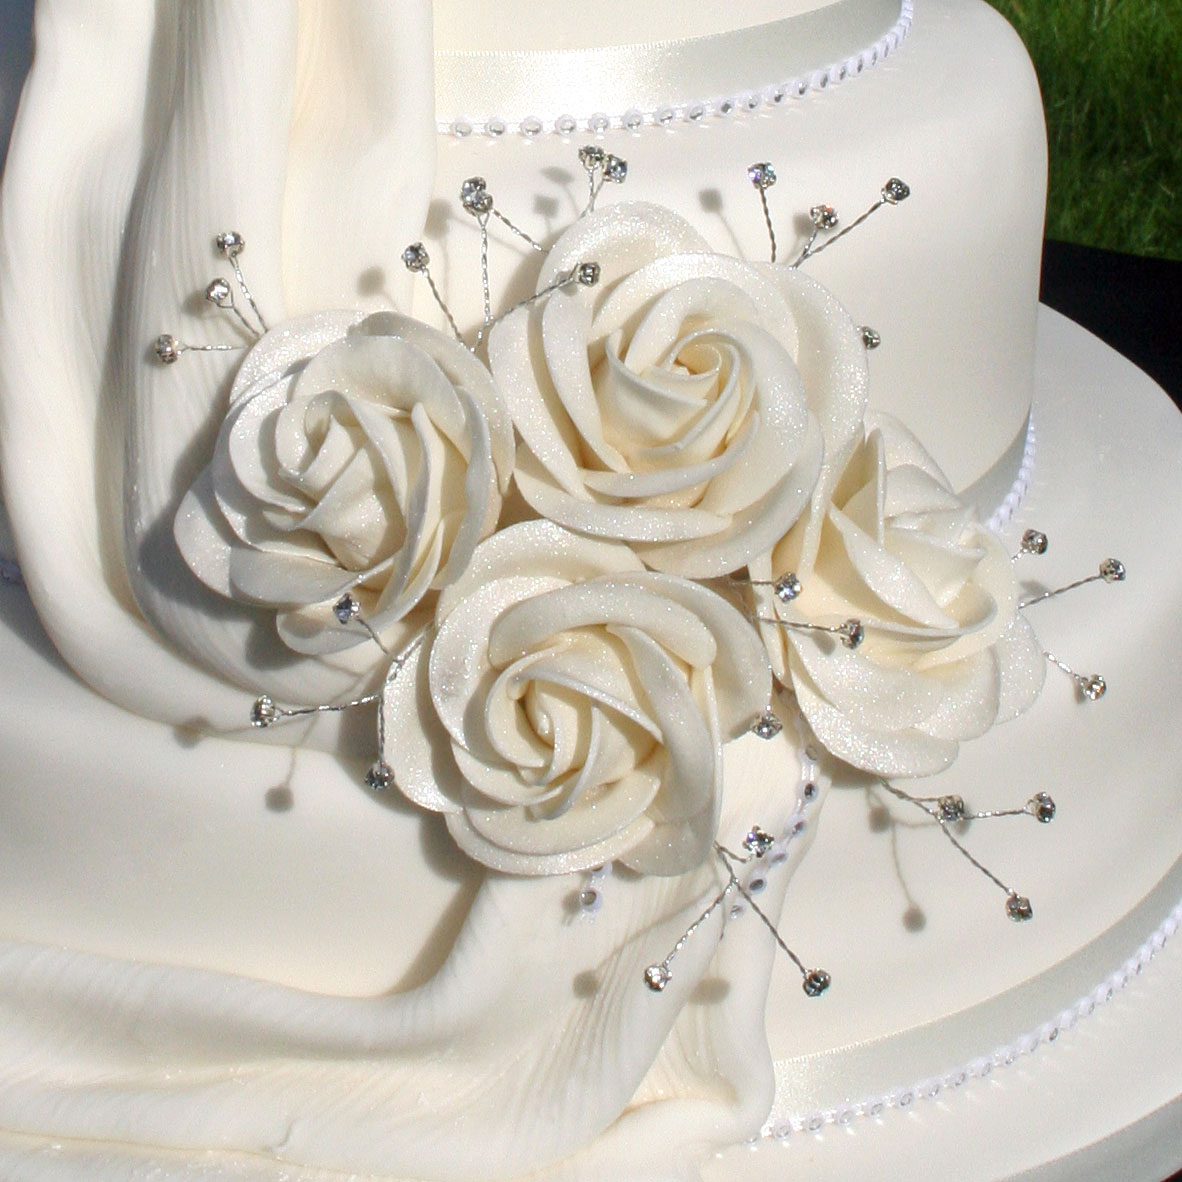 Champagne Lustre Finished Sugar Roses